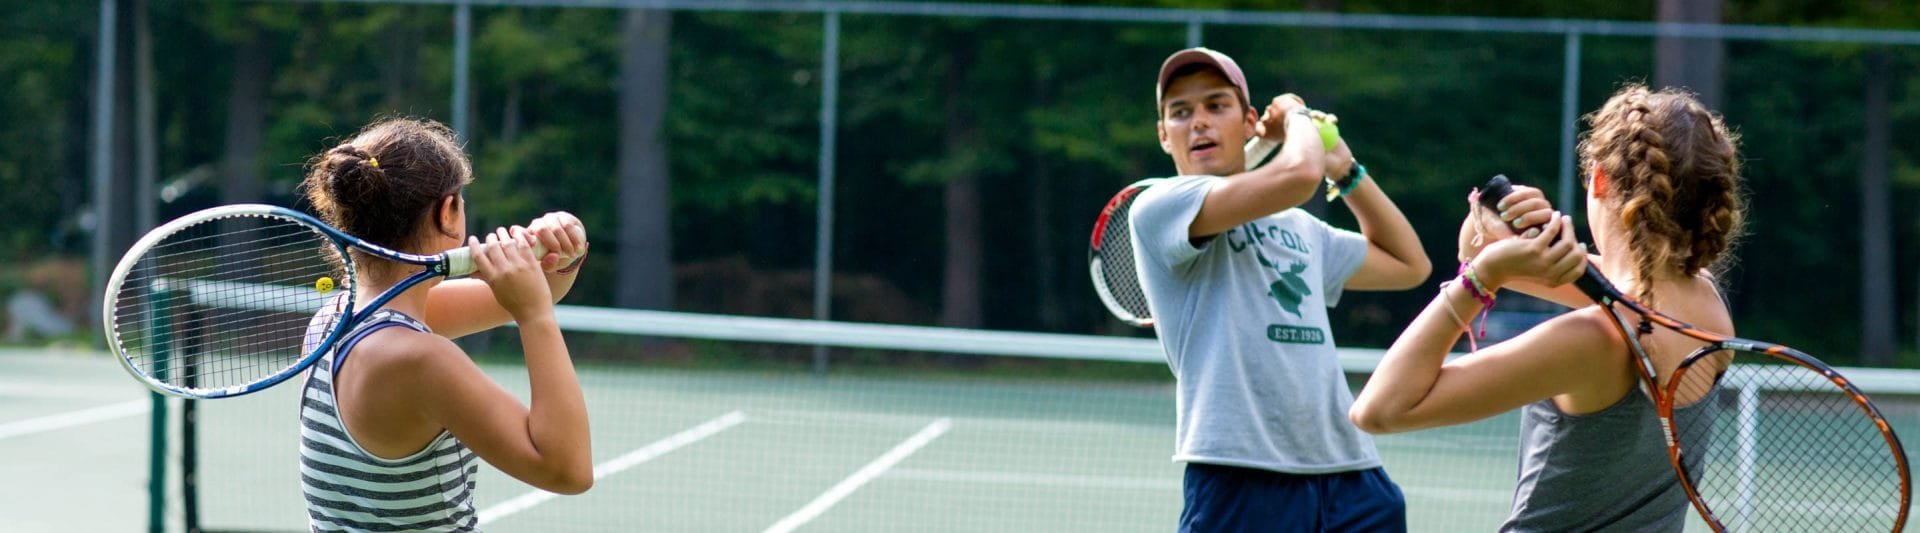 an instructor showing how to do a proper follow through with a tennis forearm swing